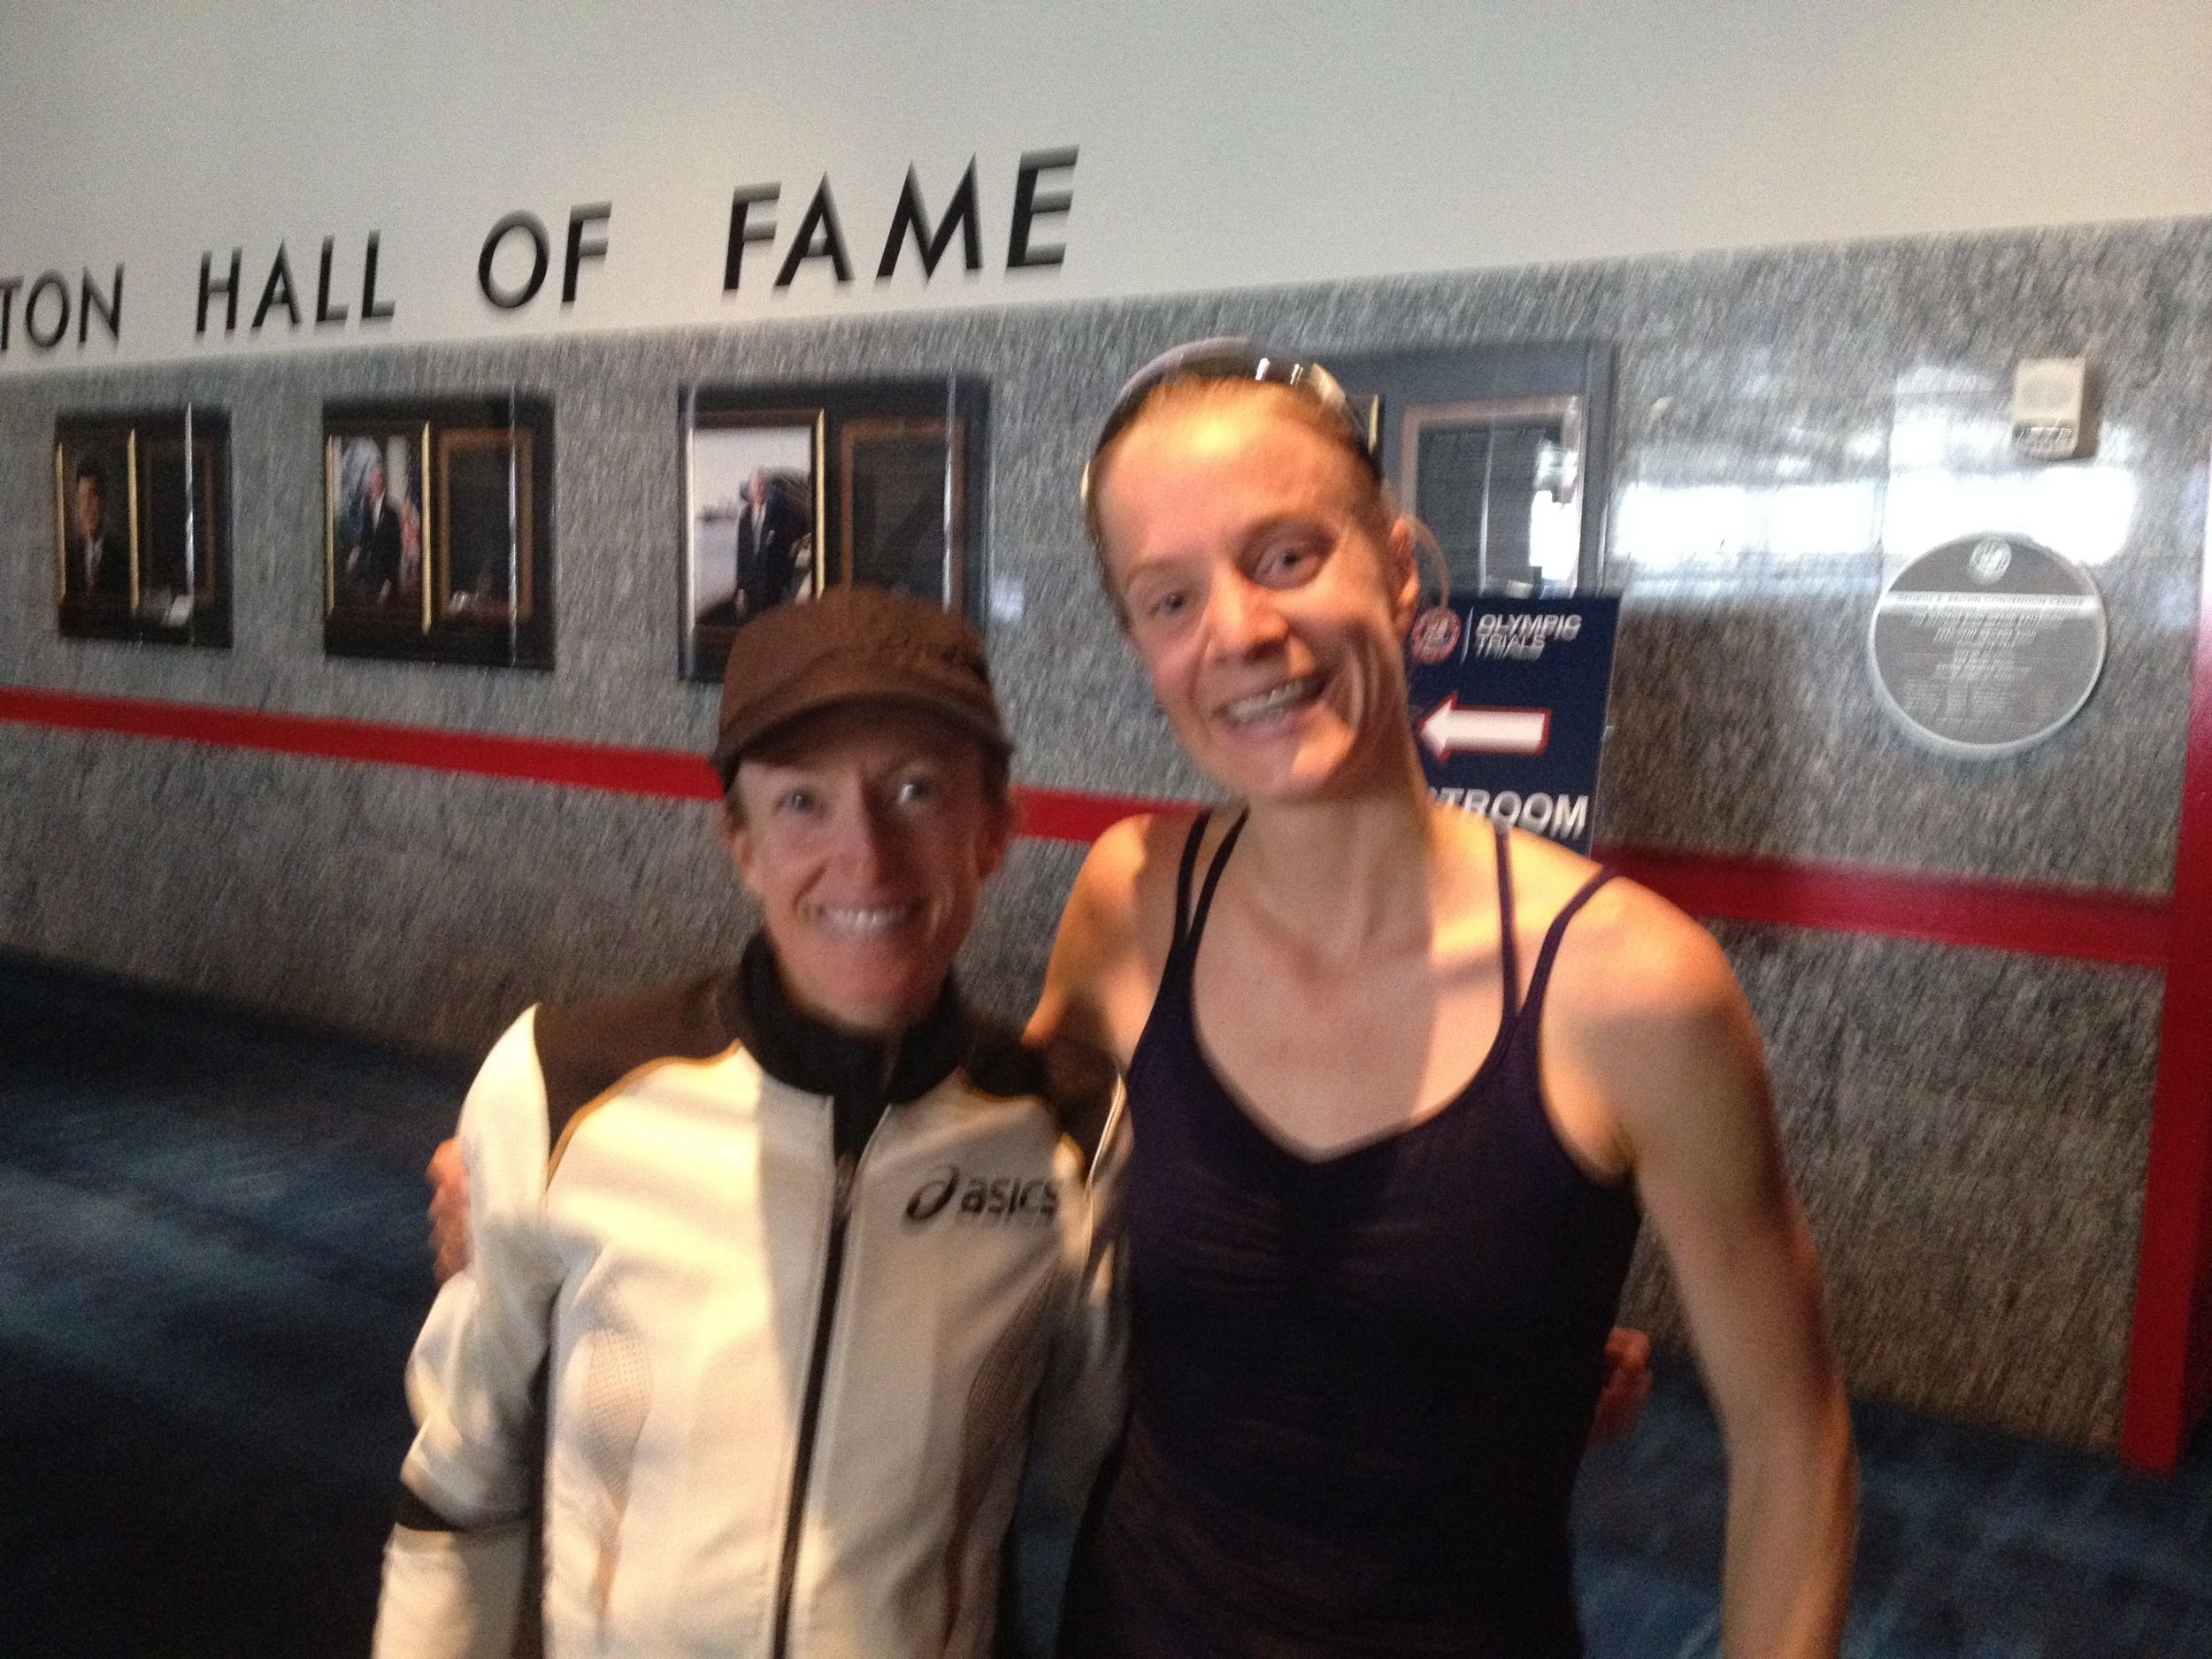 Once upon a time in 2012, I ran a PR of 2:38 at the Olympic Trials, was the fastest MUT runner in the field and then got a hug from Deena Kastor.